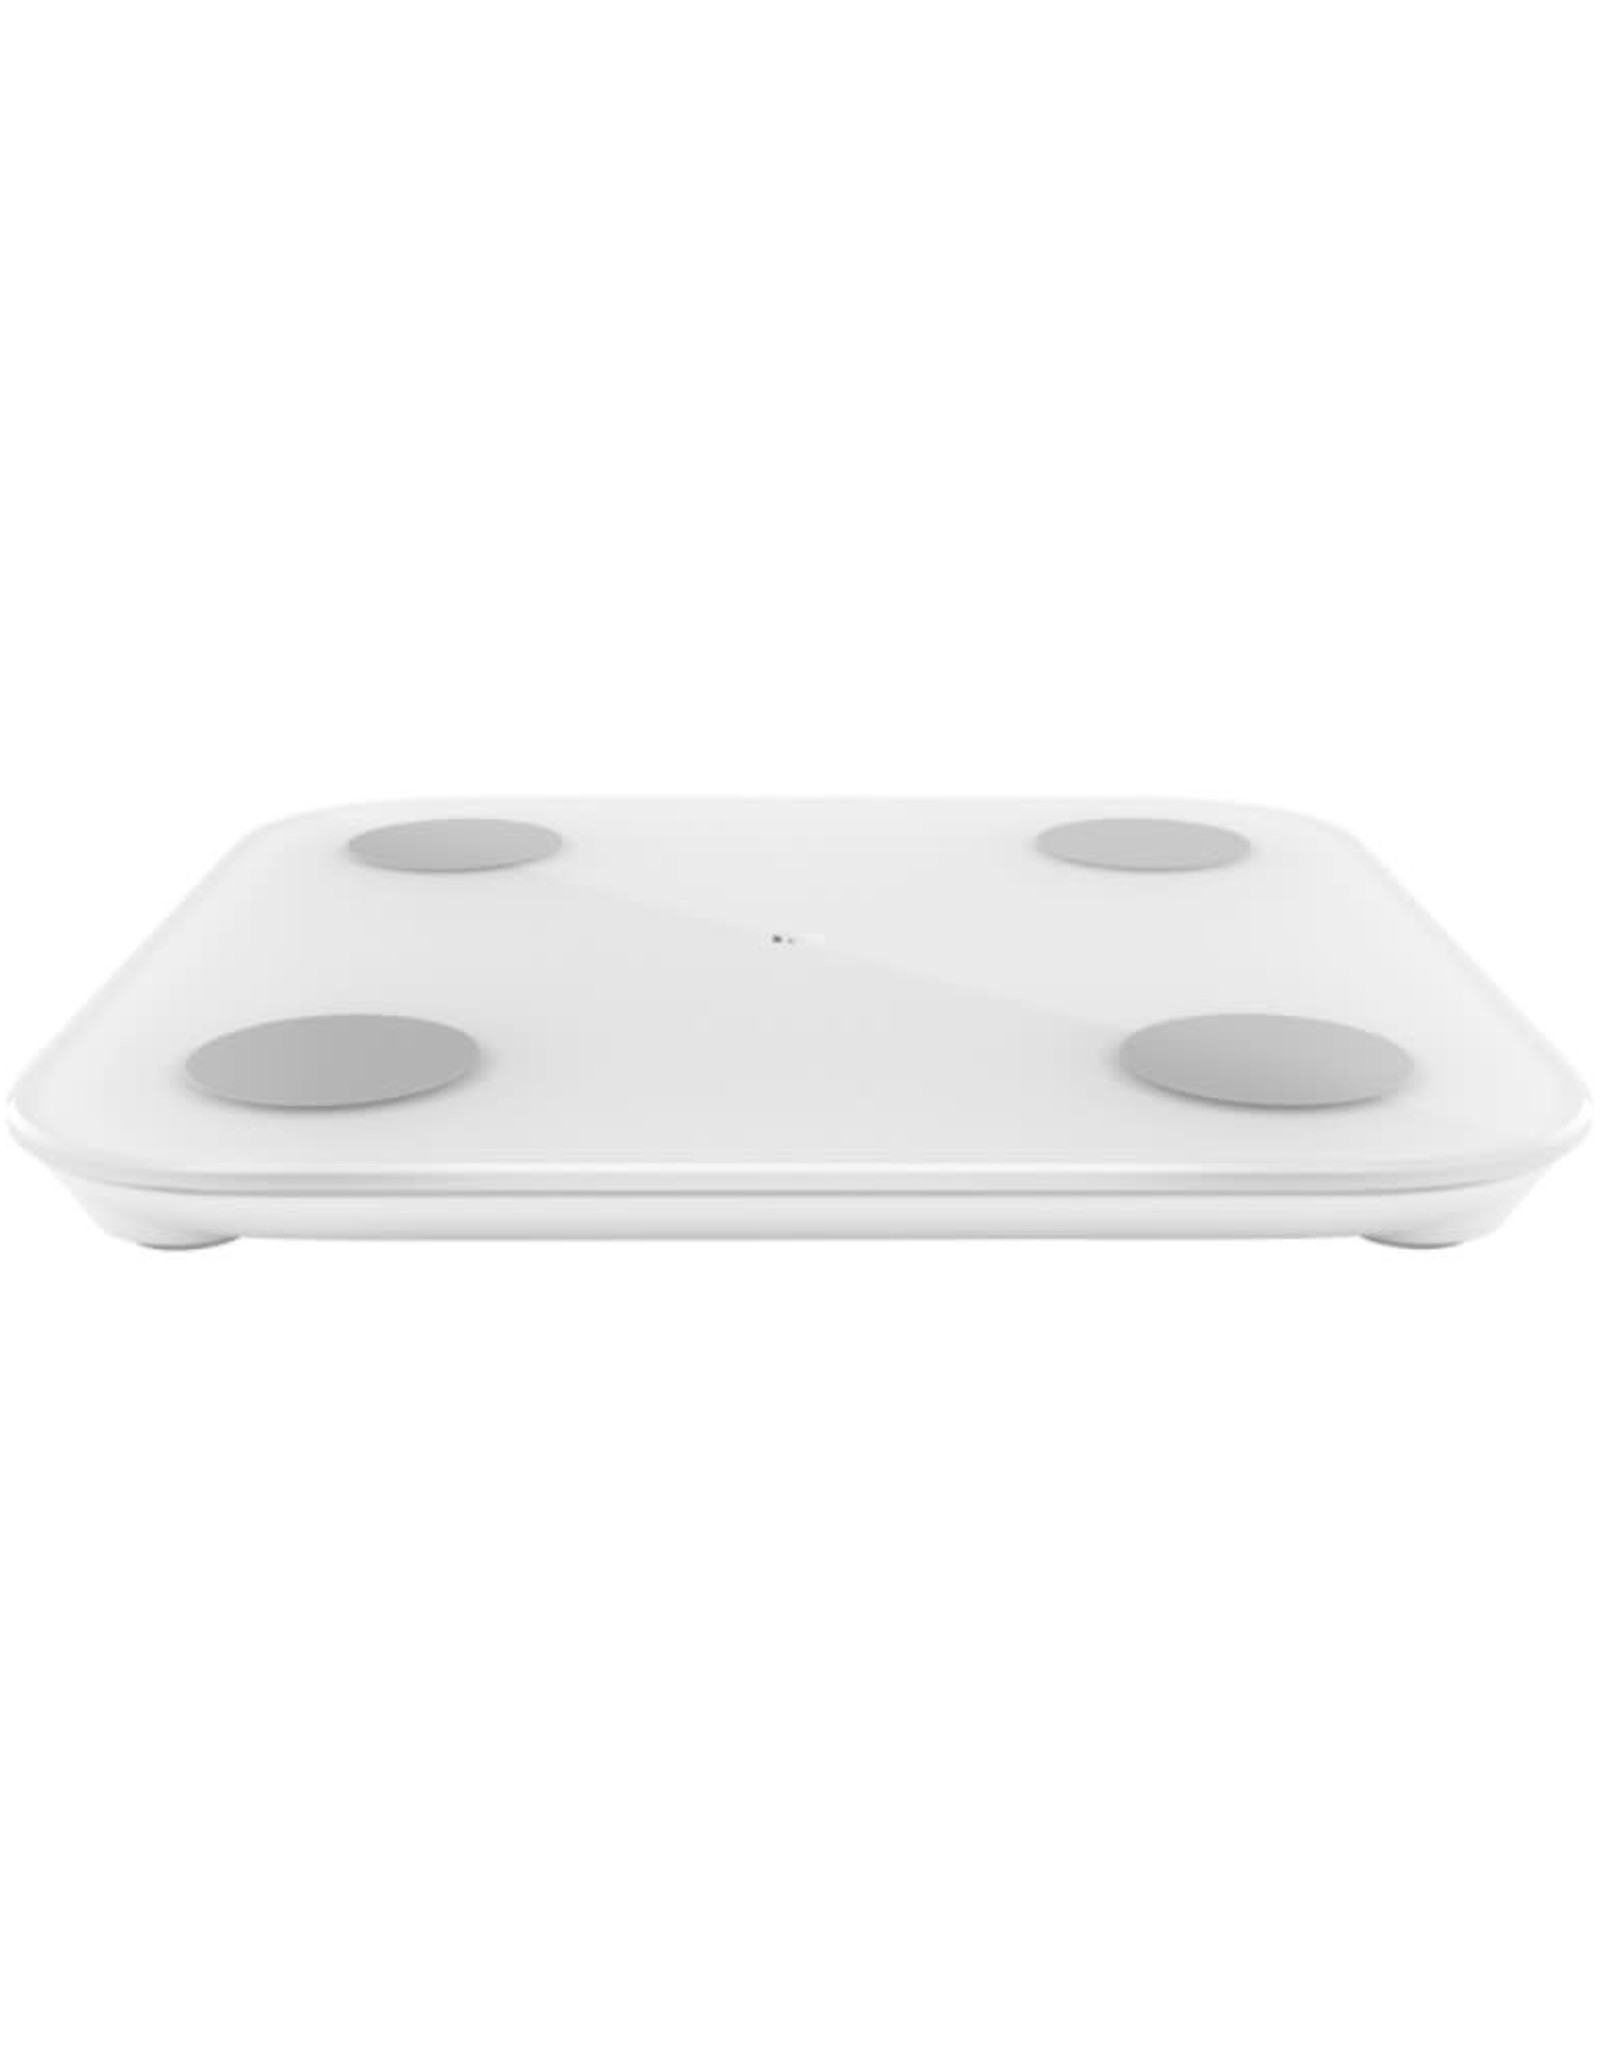 XIAOMI Mi Body Fat Smart Scale 2 Bluetooth 5.0 LED Digital Display - White